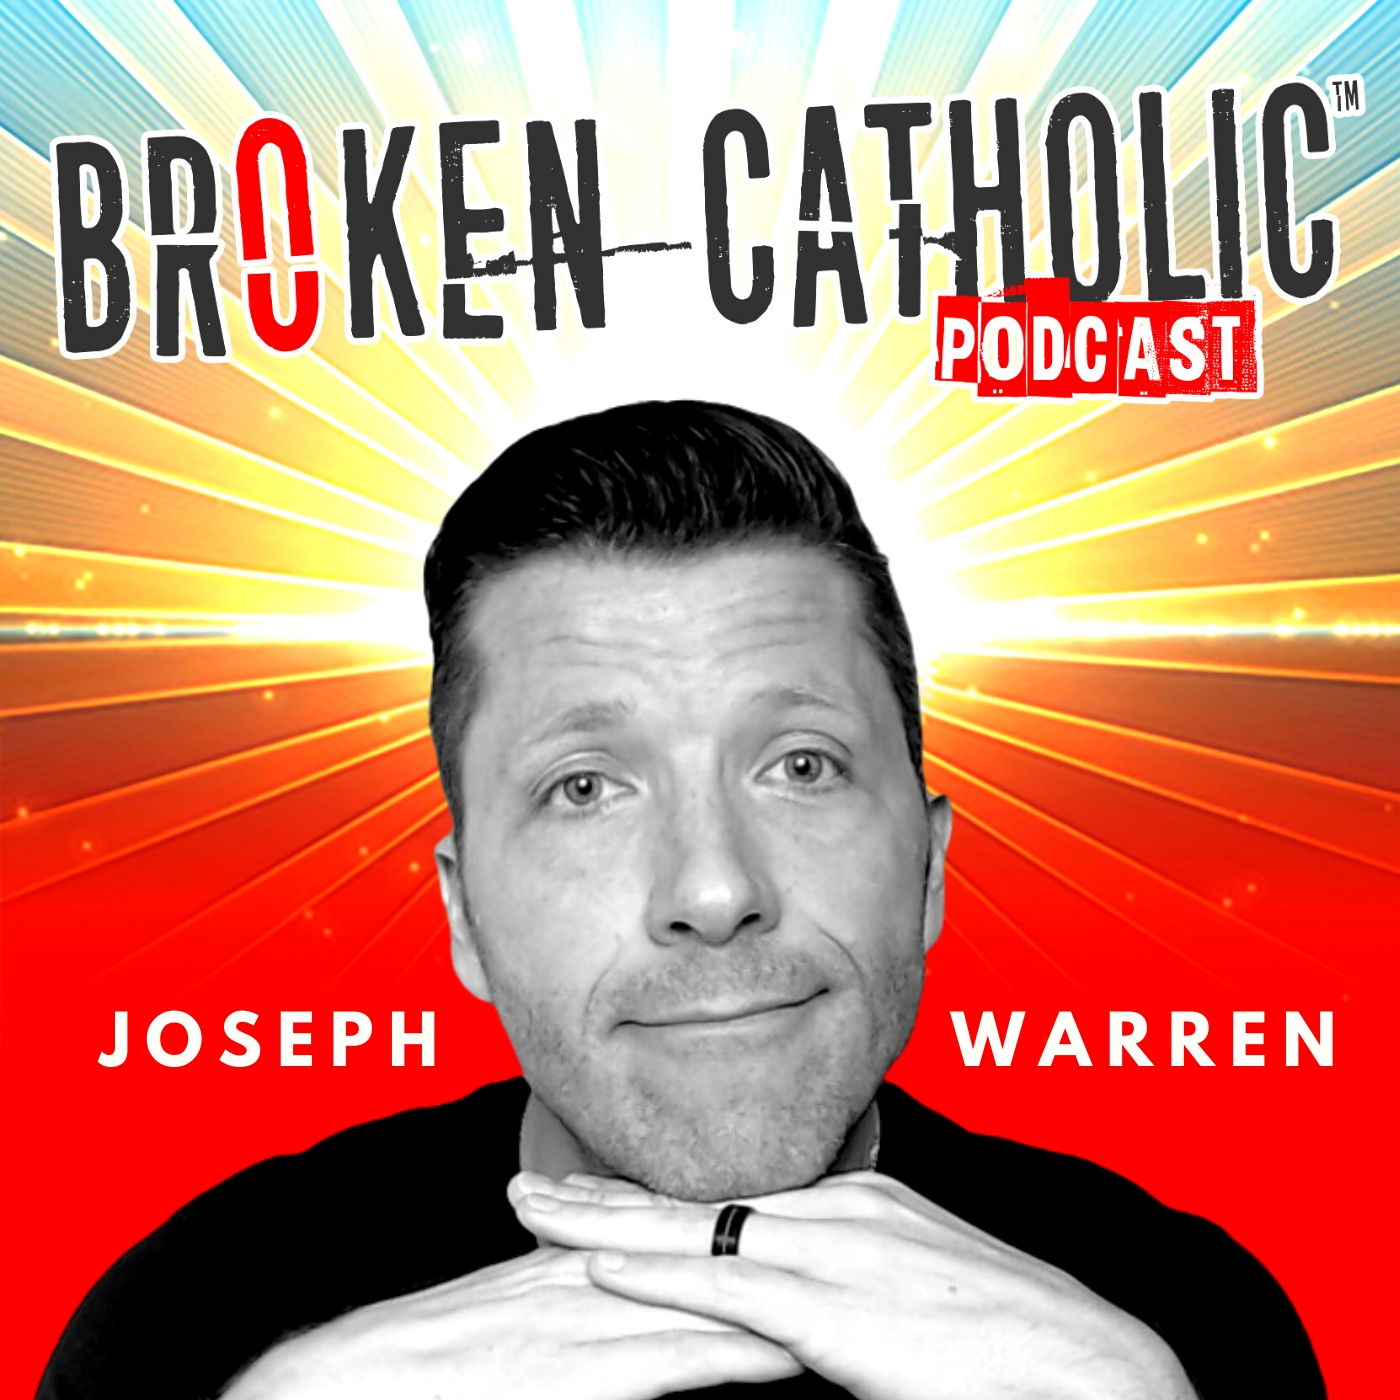 THE BROKEN CATHOLIC SHOW - Life Coaching, Online Church, & Spiritual Growth for Christian Men and Women show art